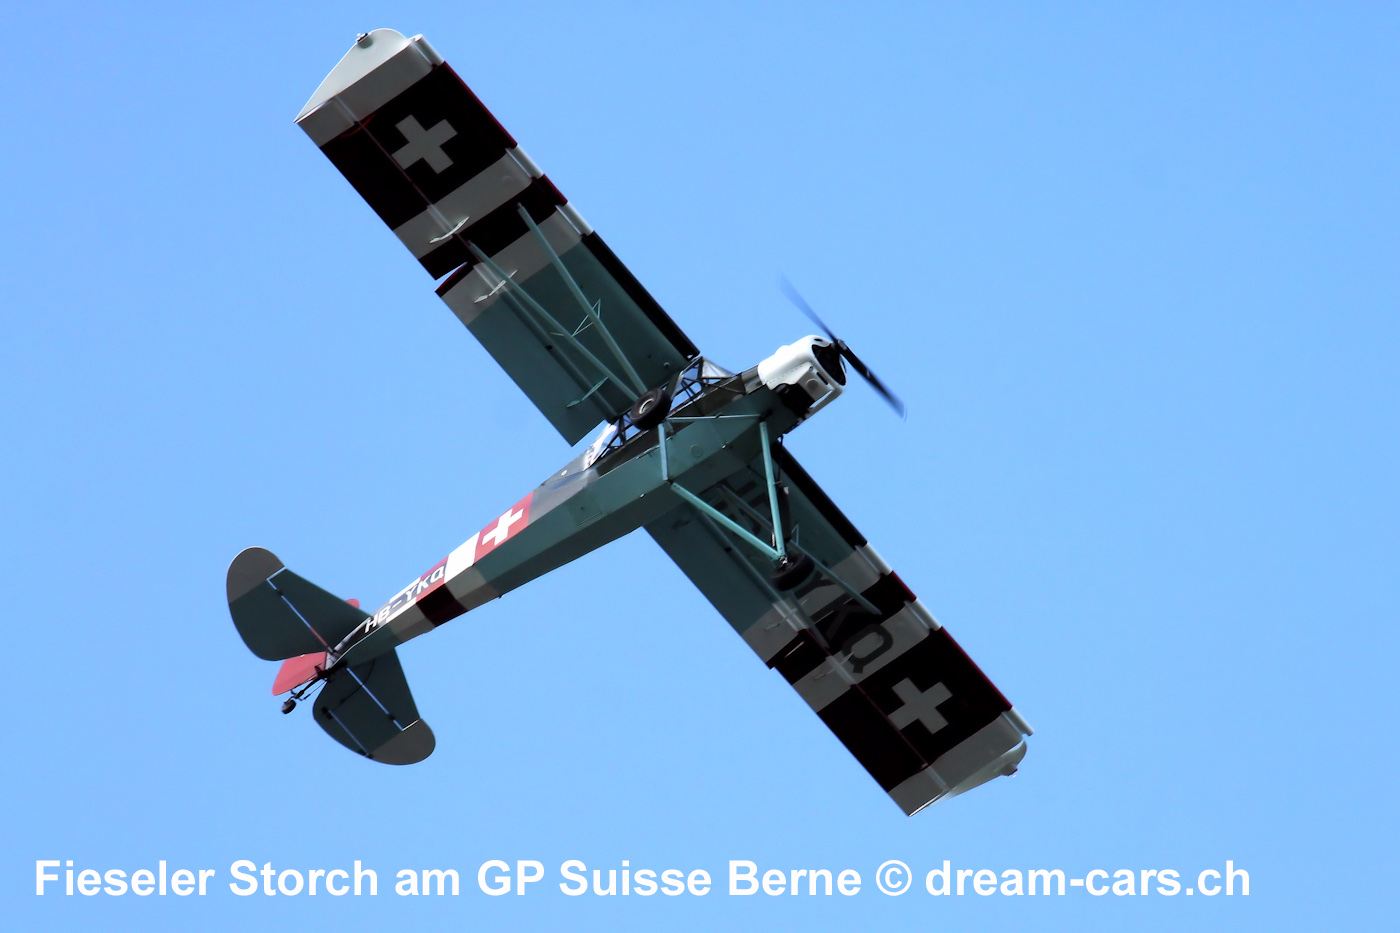 Fieseler Storch am GP Suisse Berne Memorial 2018